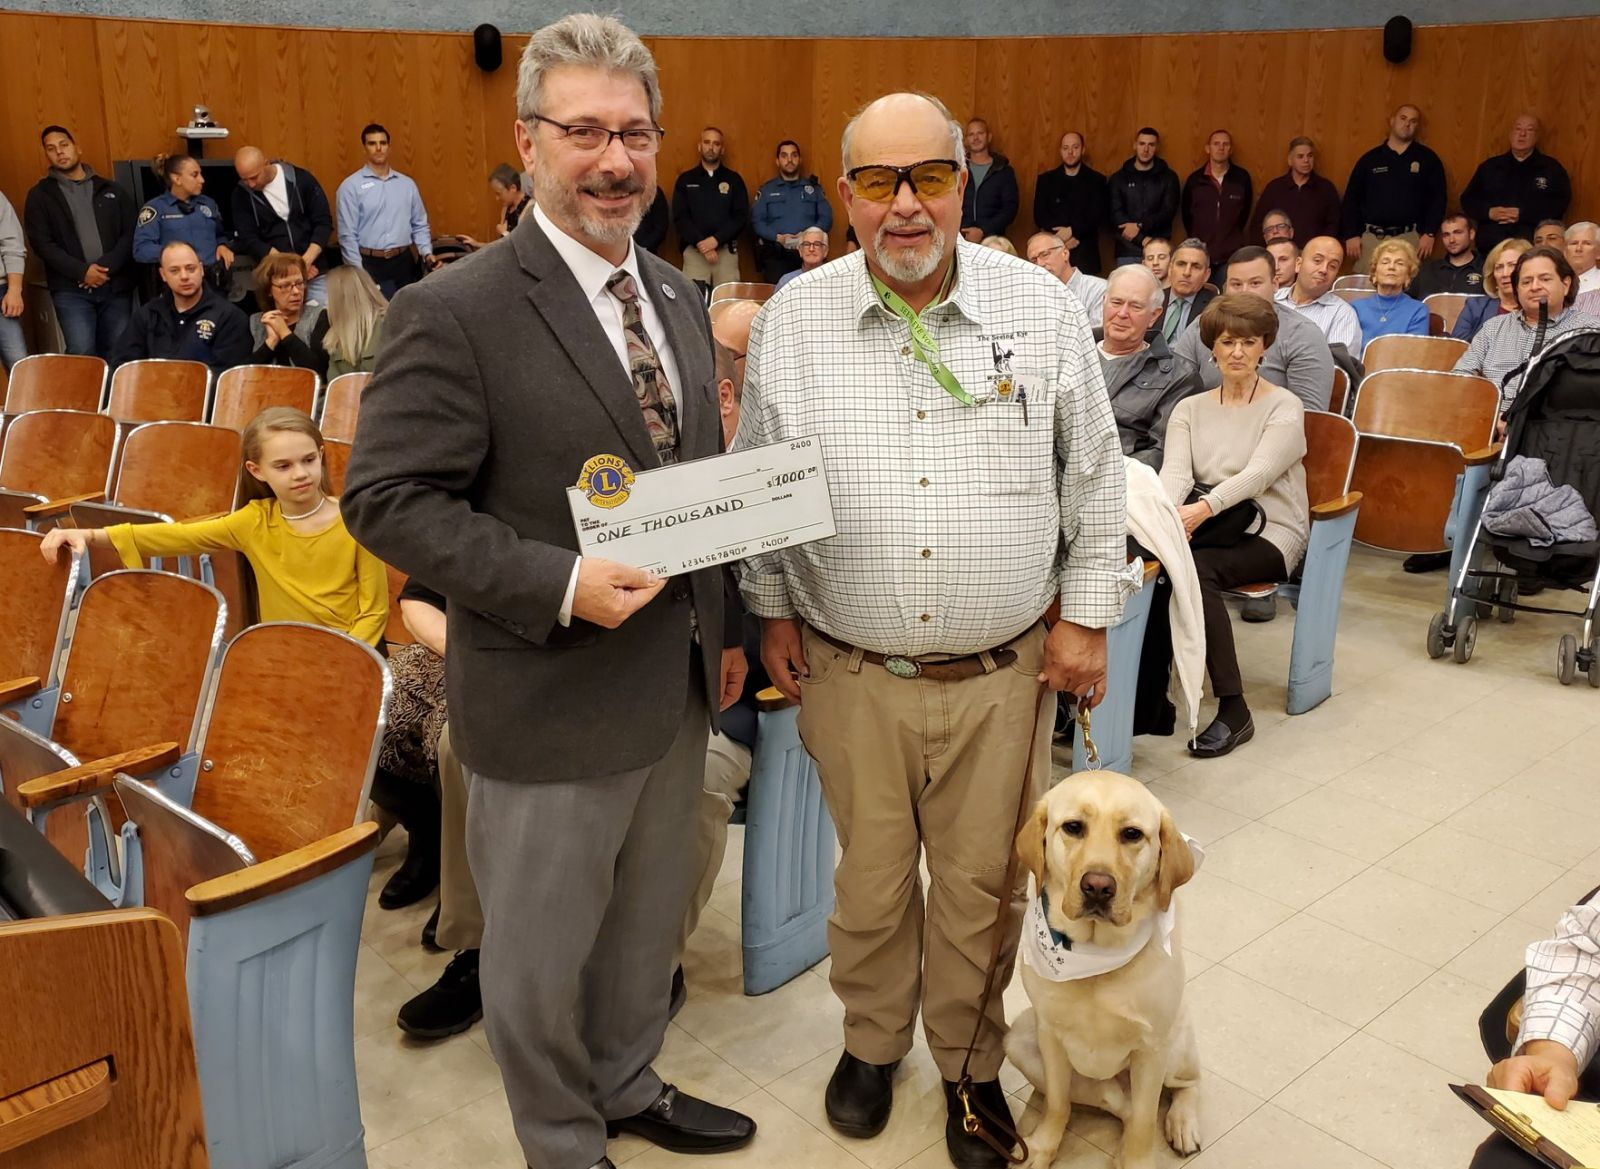 Martin Nusbaum and his service dog Friday, The Seeing Eye, Morristown NJ — with The Seeing Eye, Inc. at Wayne Township NJ.